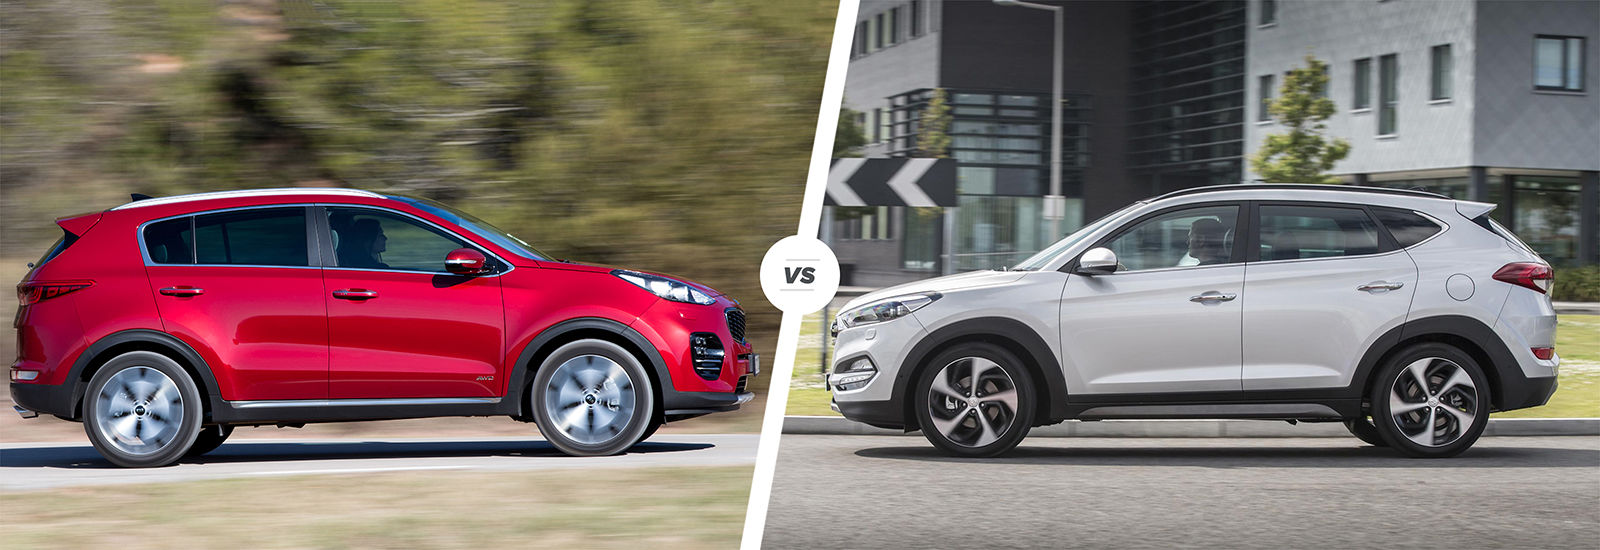 Beautiful Kia Sportage Vs Hyundai Tucson U2013 Driving